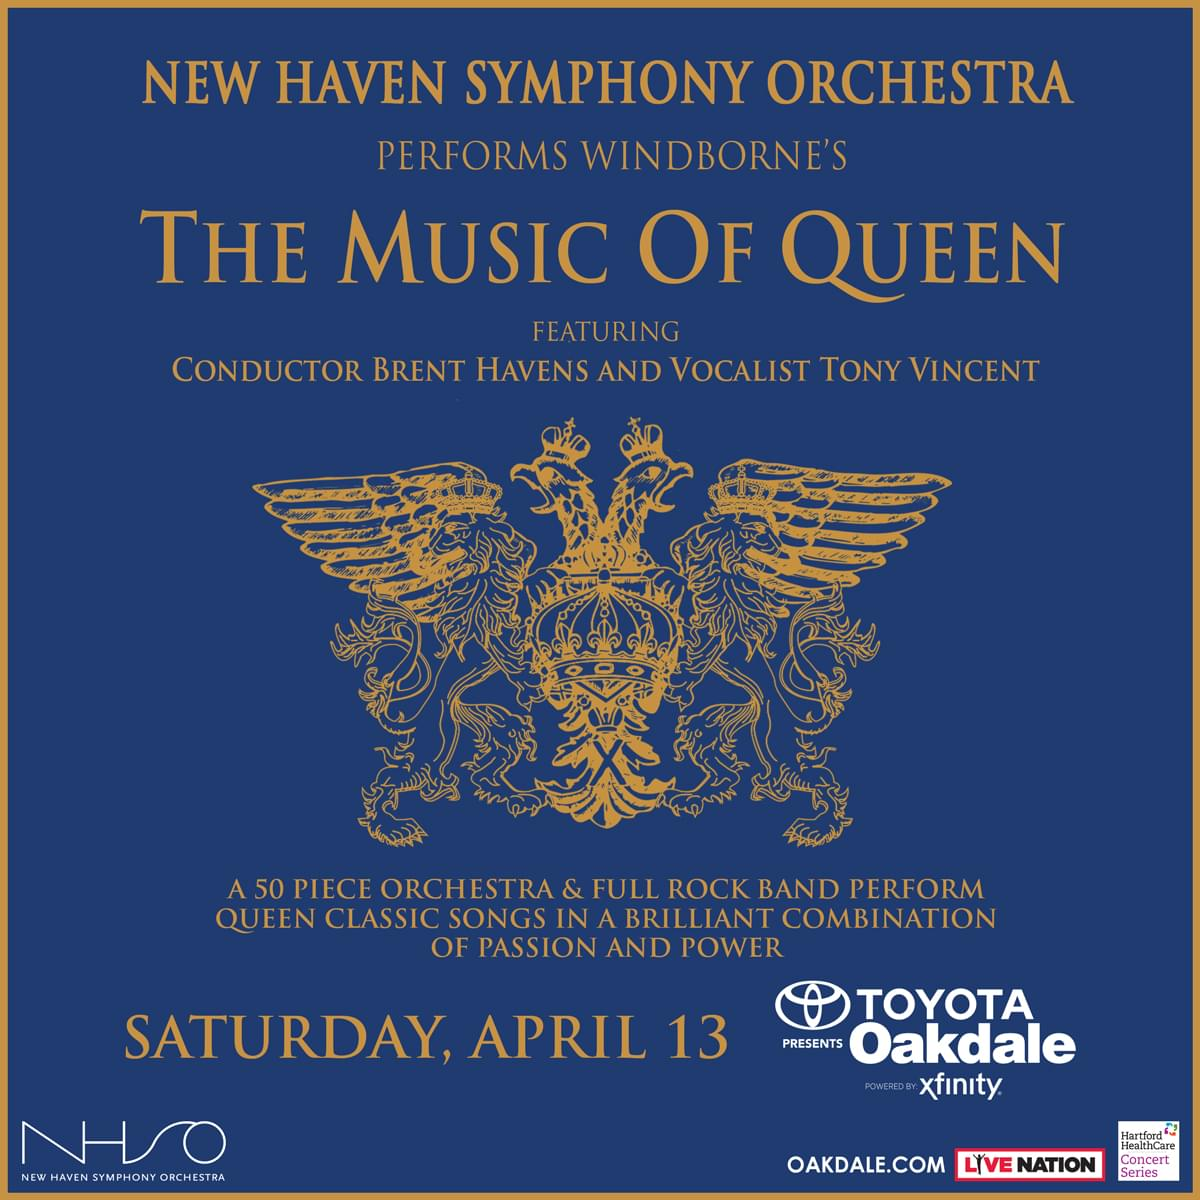 Enter to win tickets to The Music of Queen performed by the New Haven Symphony Orchestra